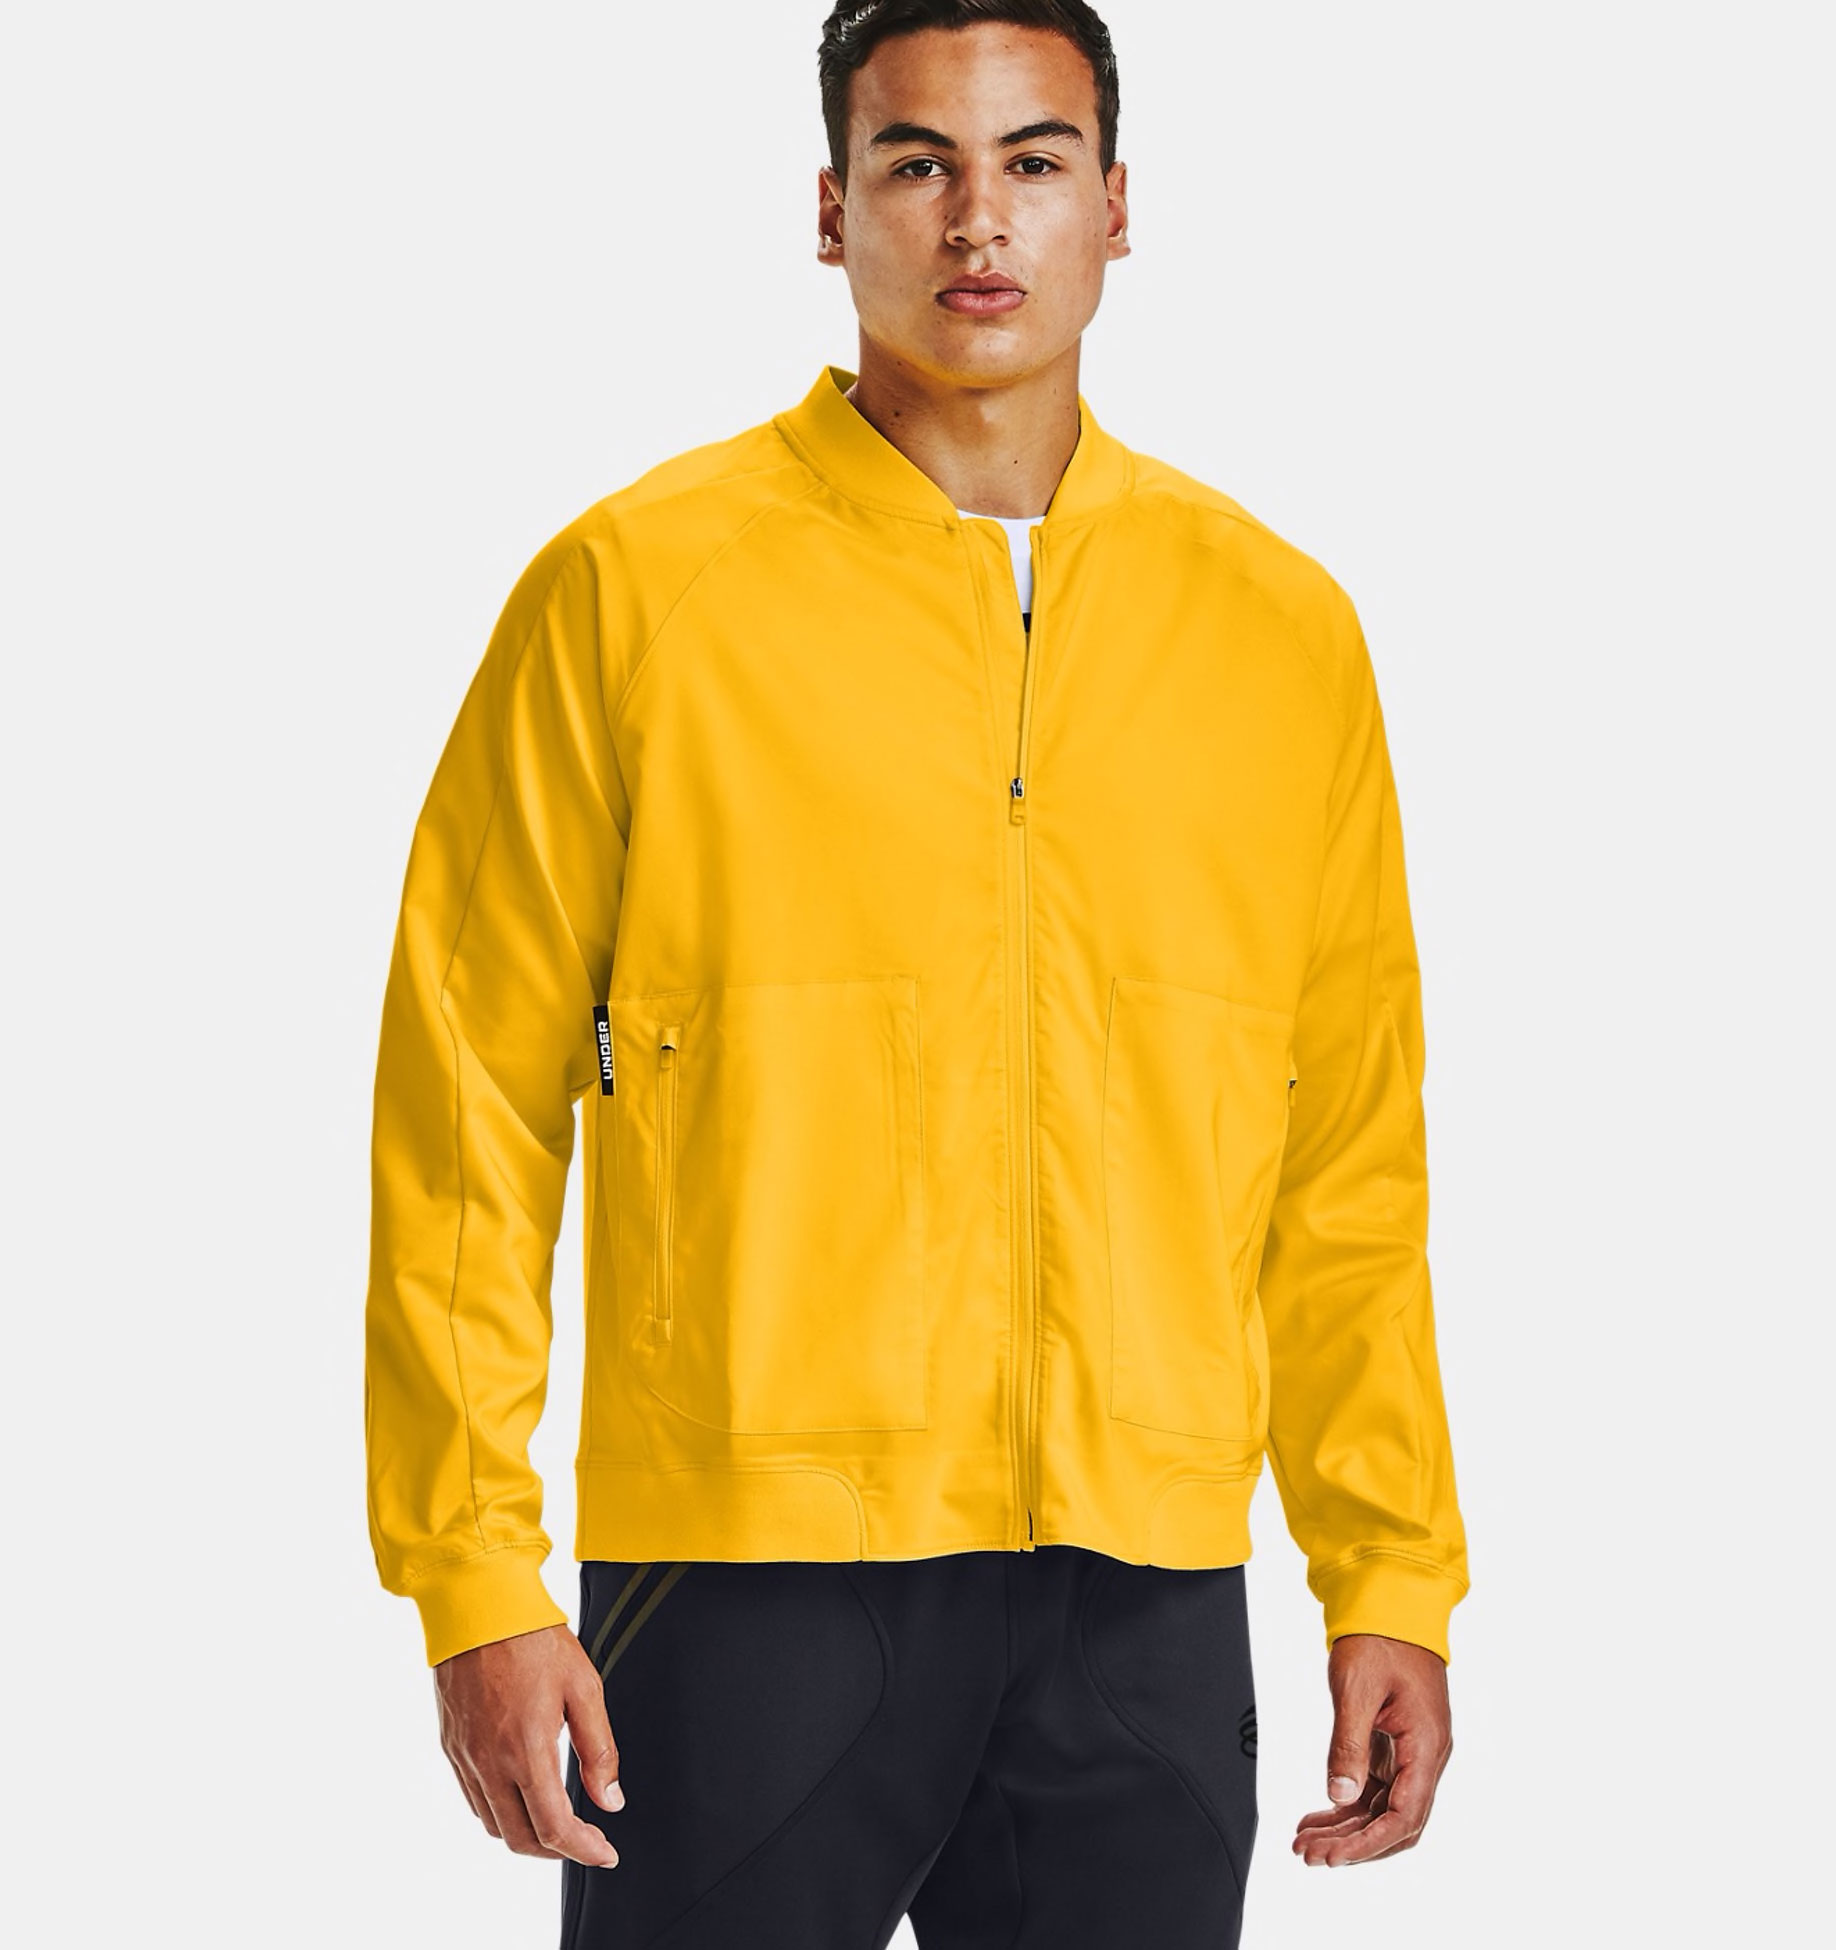 curry-8-jacket-gold-yellow-1